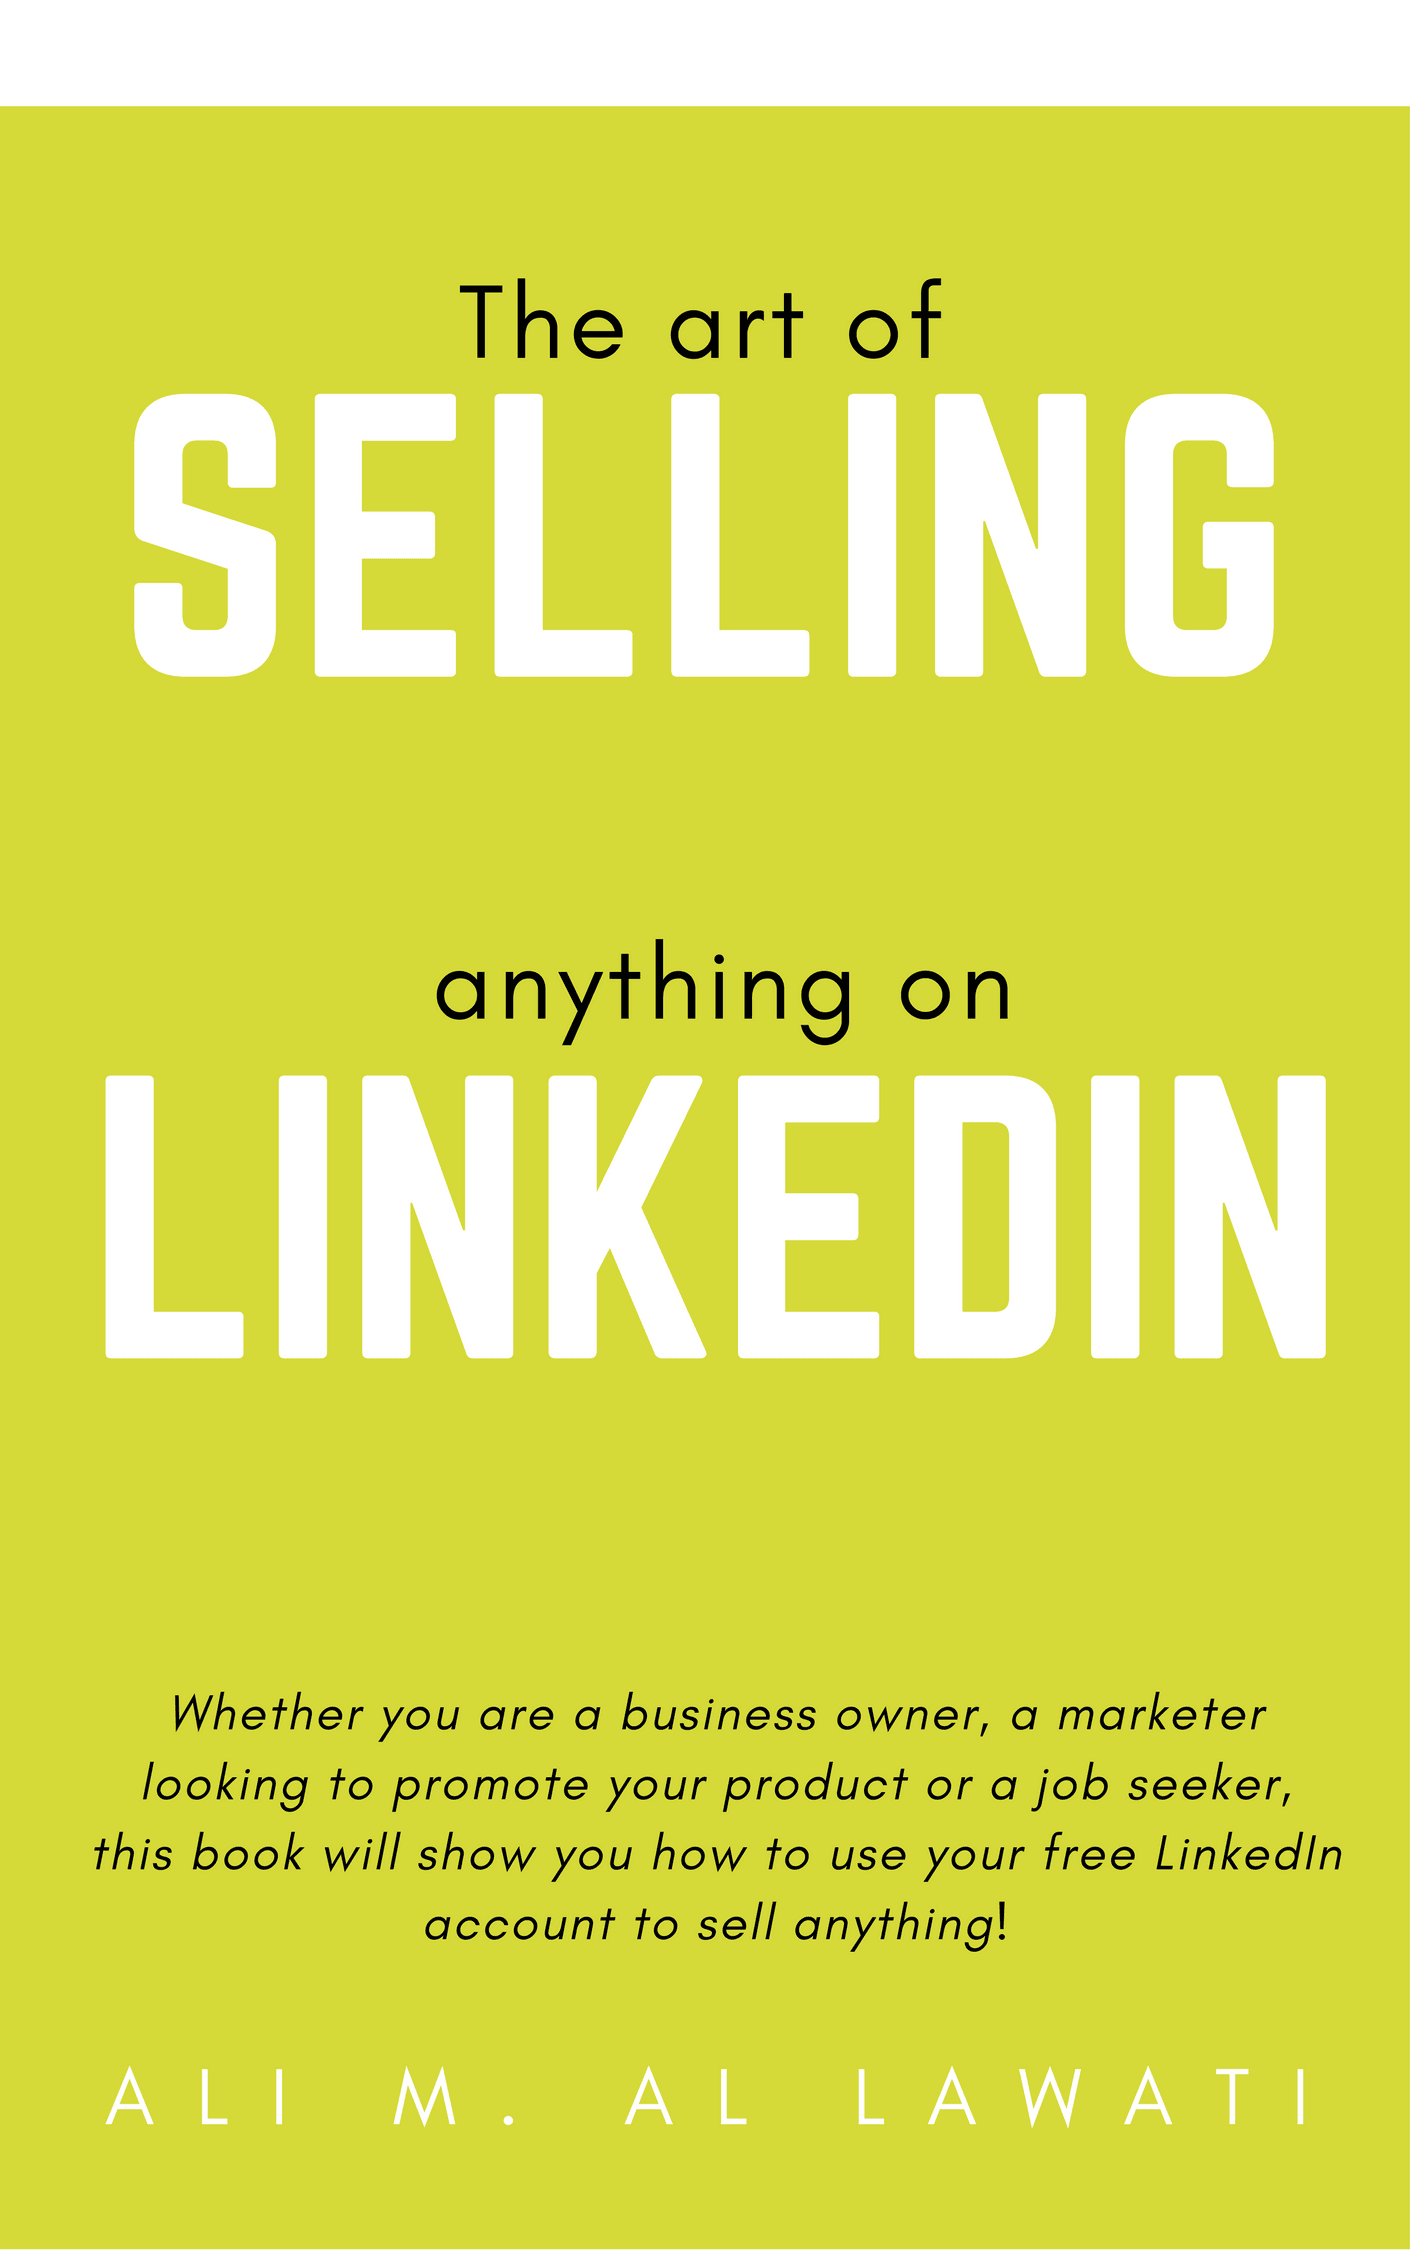 How to Sell anything on LinkedIn